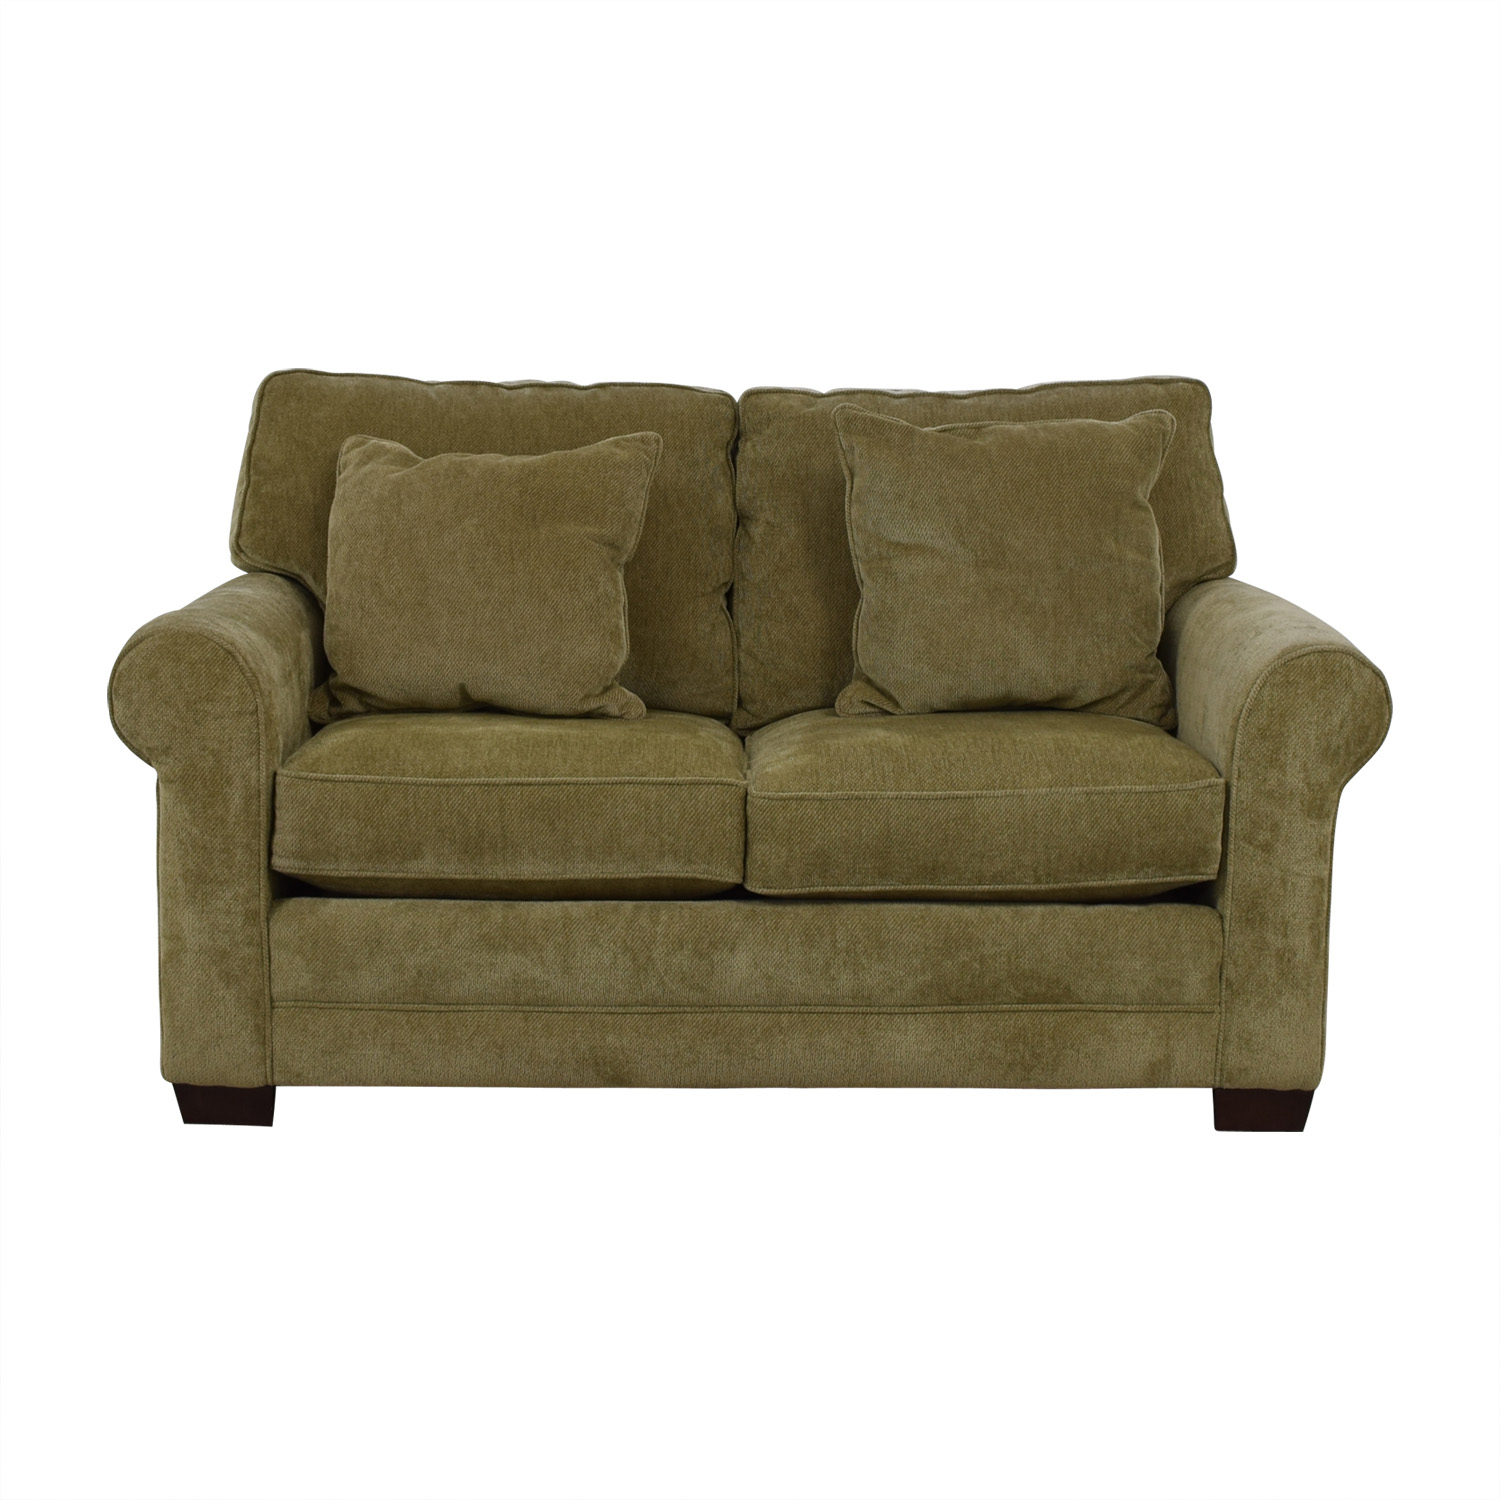 buy Raymour & Flanigan Gray Two-Cushion Love Seat Raymour & Flanigan Loveseats